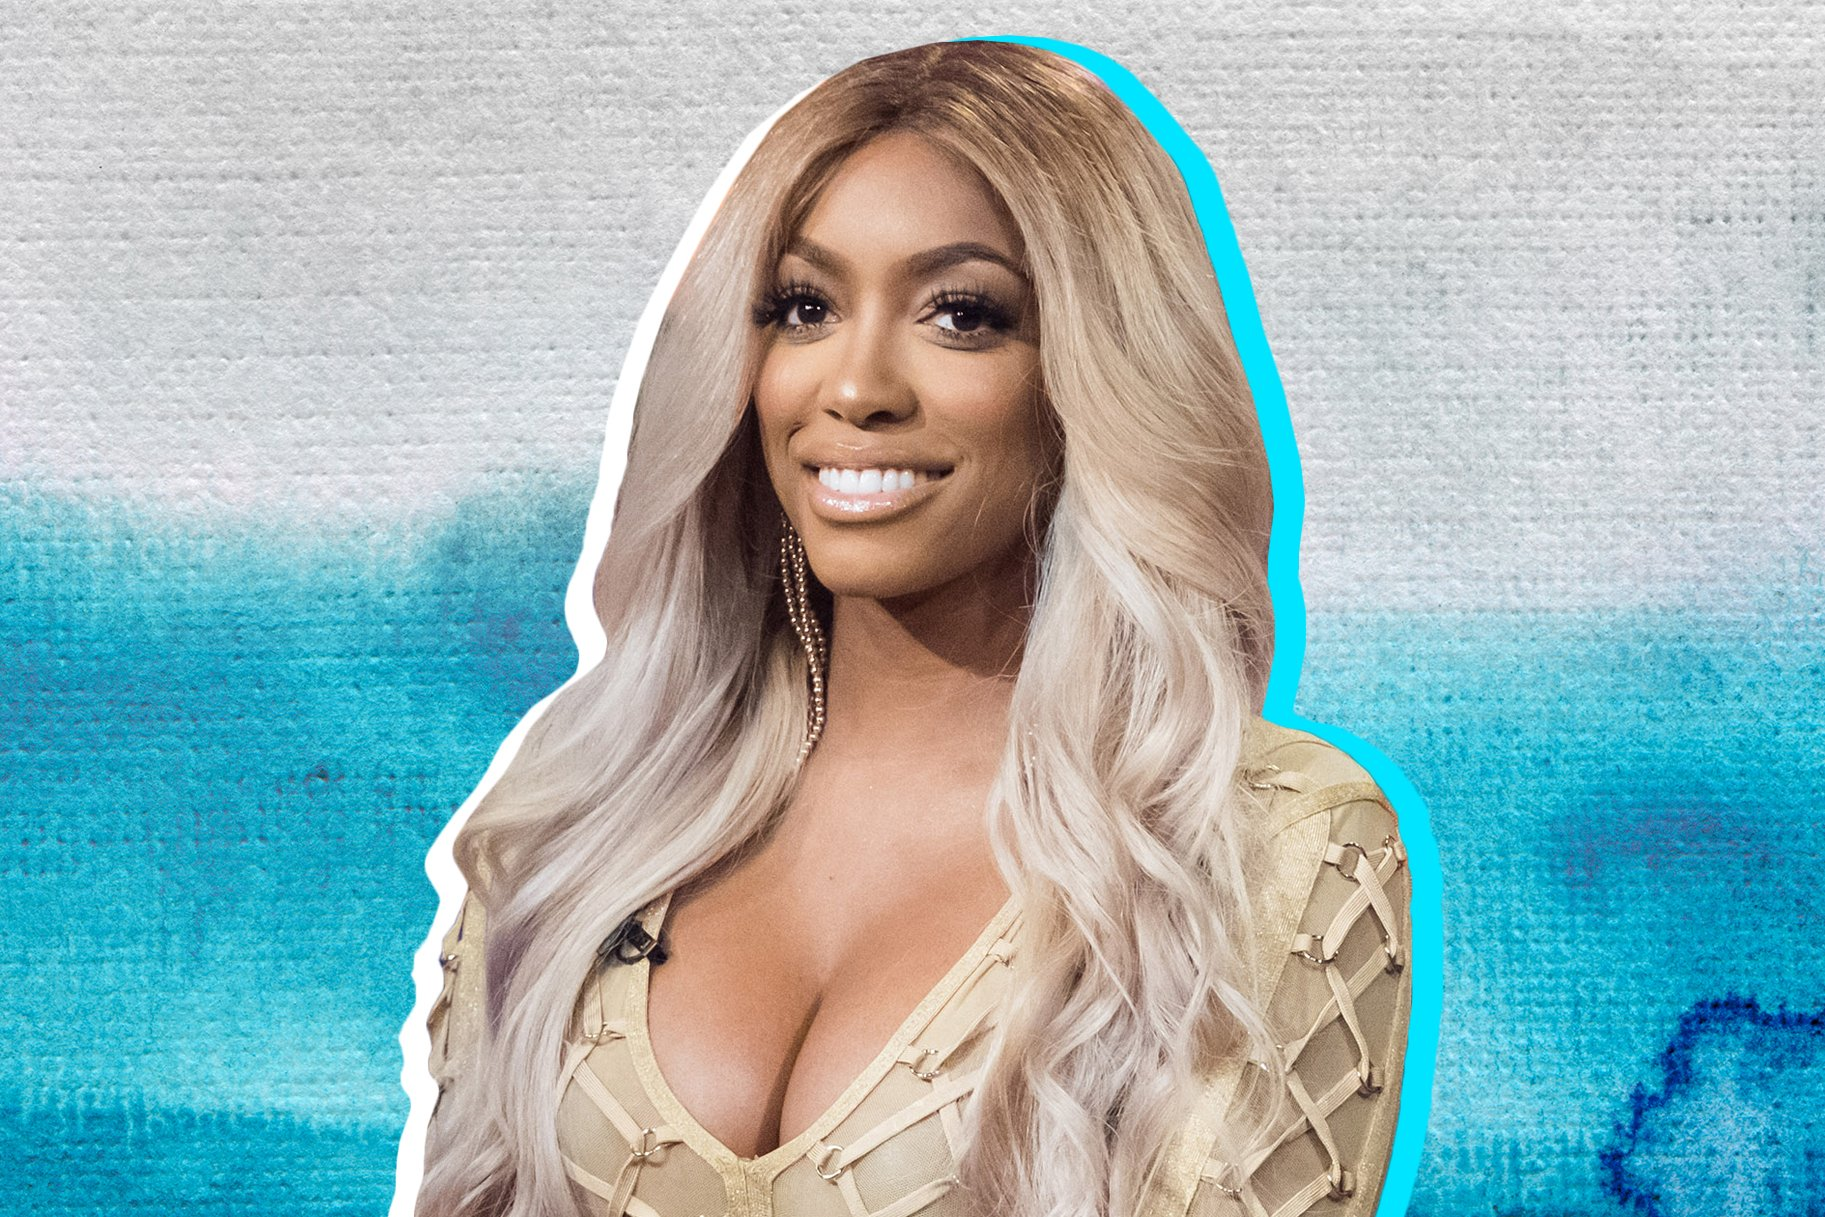 Porsha Williams Introduces Her New Sister To Fans And Followers